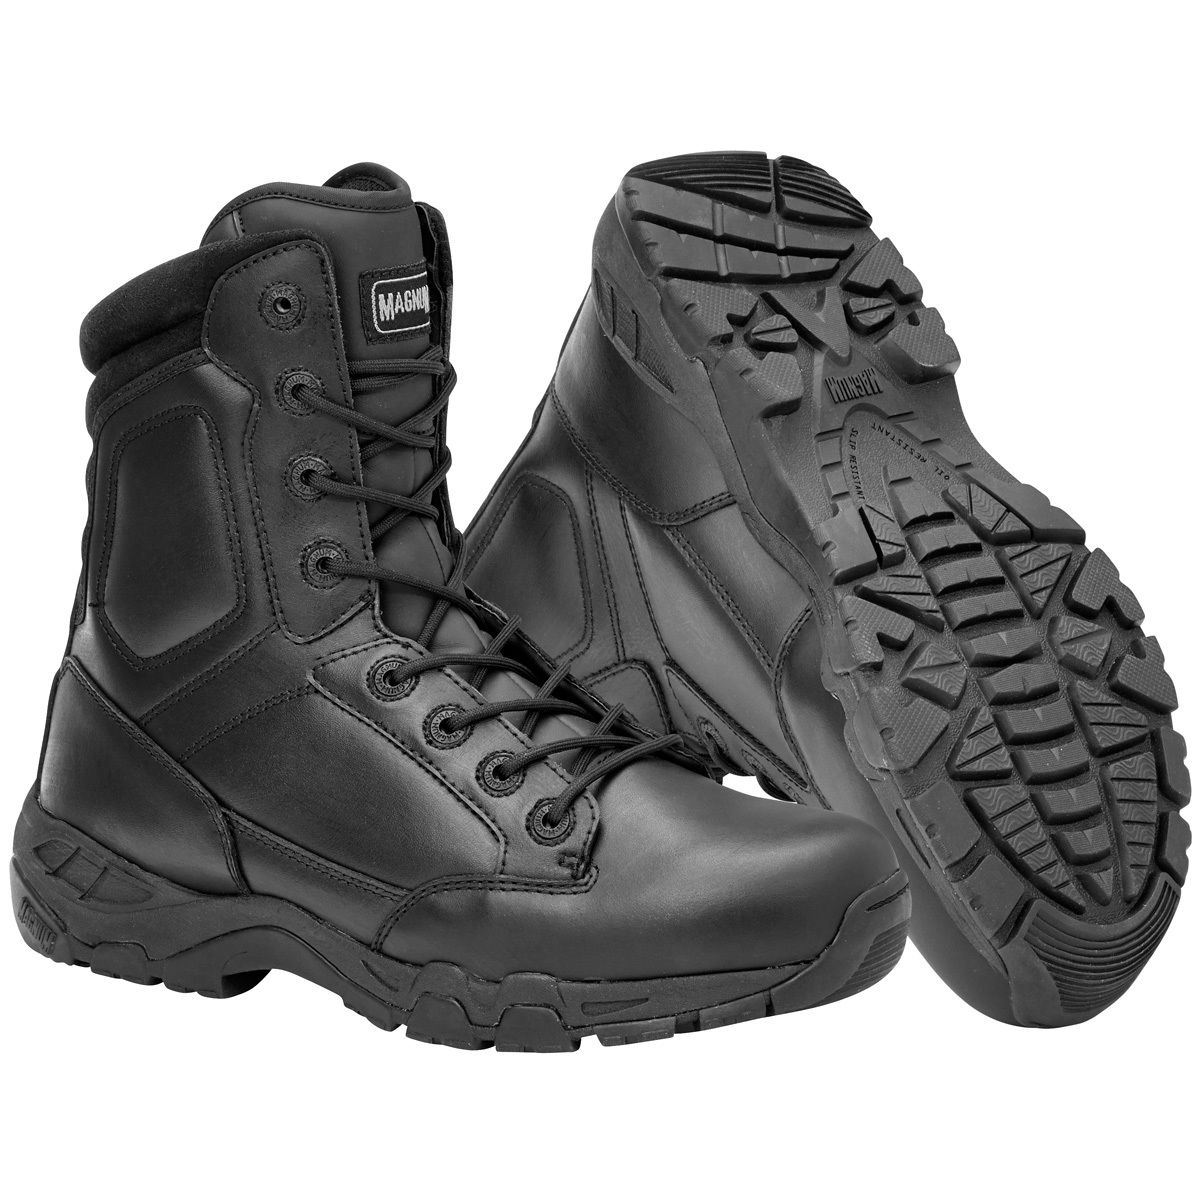 c0d8a544a19 Details about MAGNUM VIPER PRO 8.0 LEATHER BOOTS MENS WATERPROOF SECURITY  PATROL POLICE BLACK